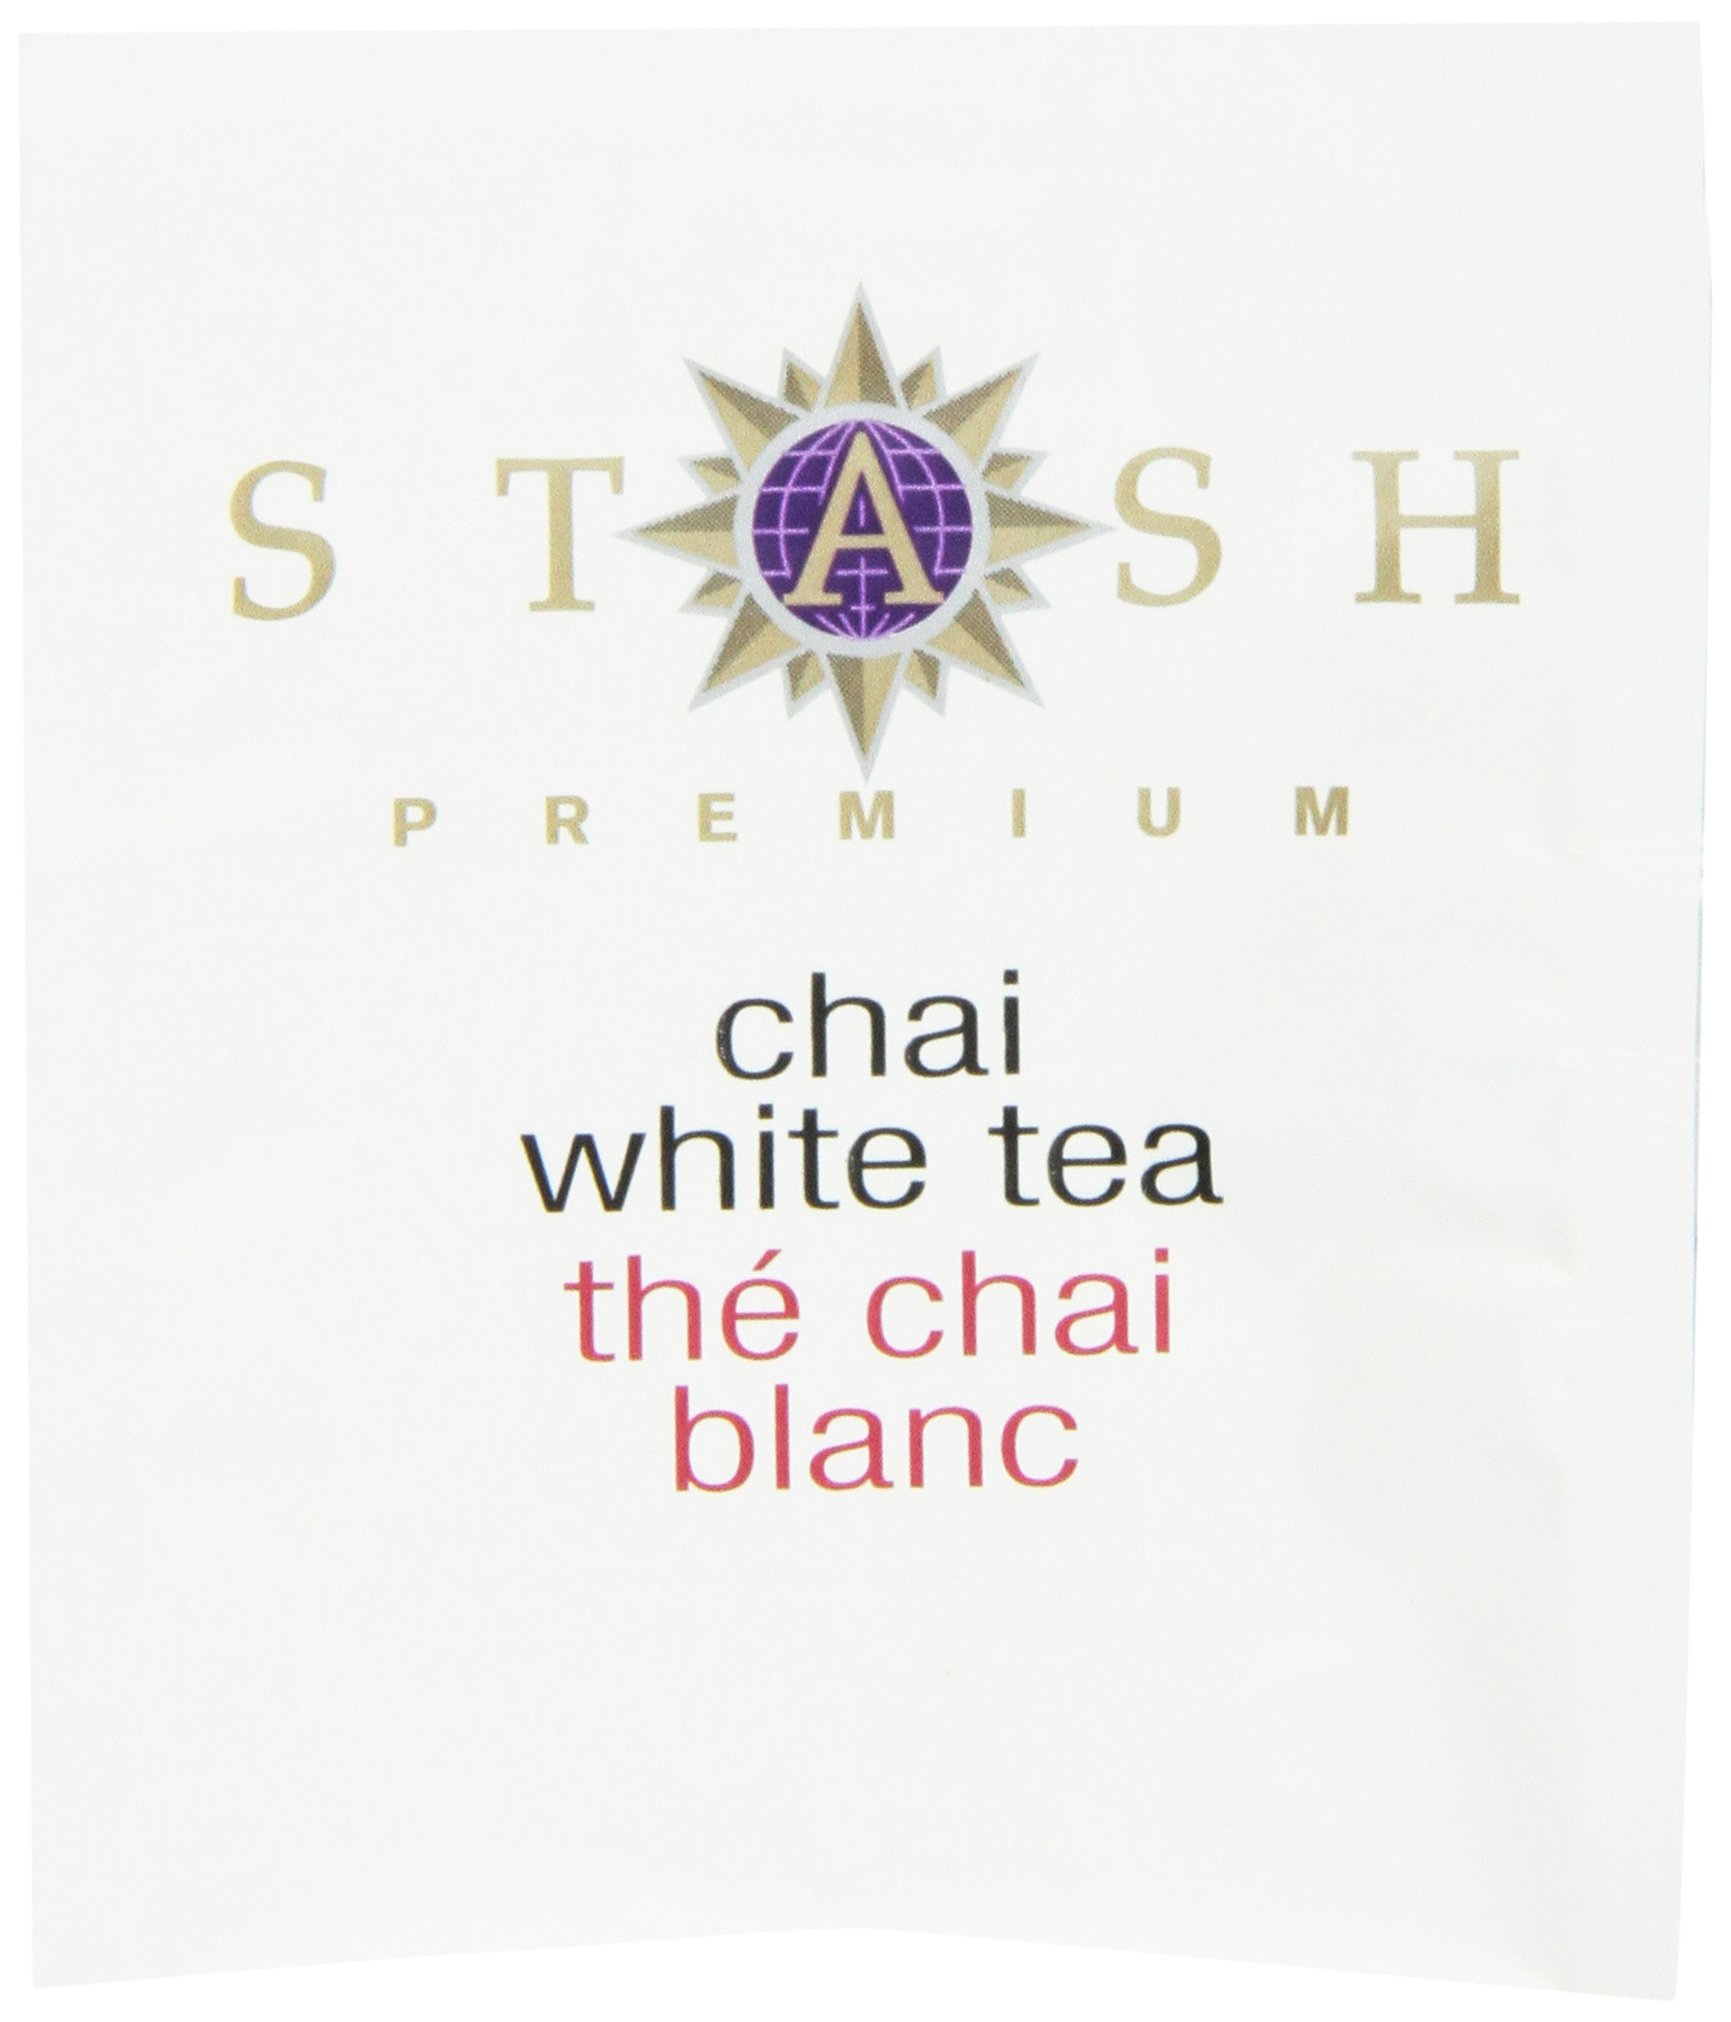 Stash Tea White Chai Tea 10 Count Tea Bags in Foil (Pack of 12) (packaging may vary) Individual Spiced White Tea Bags for Use in Teapots Mugs or Cups, Brew Hot Tea or Iced Tea by Stash Tea